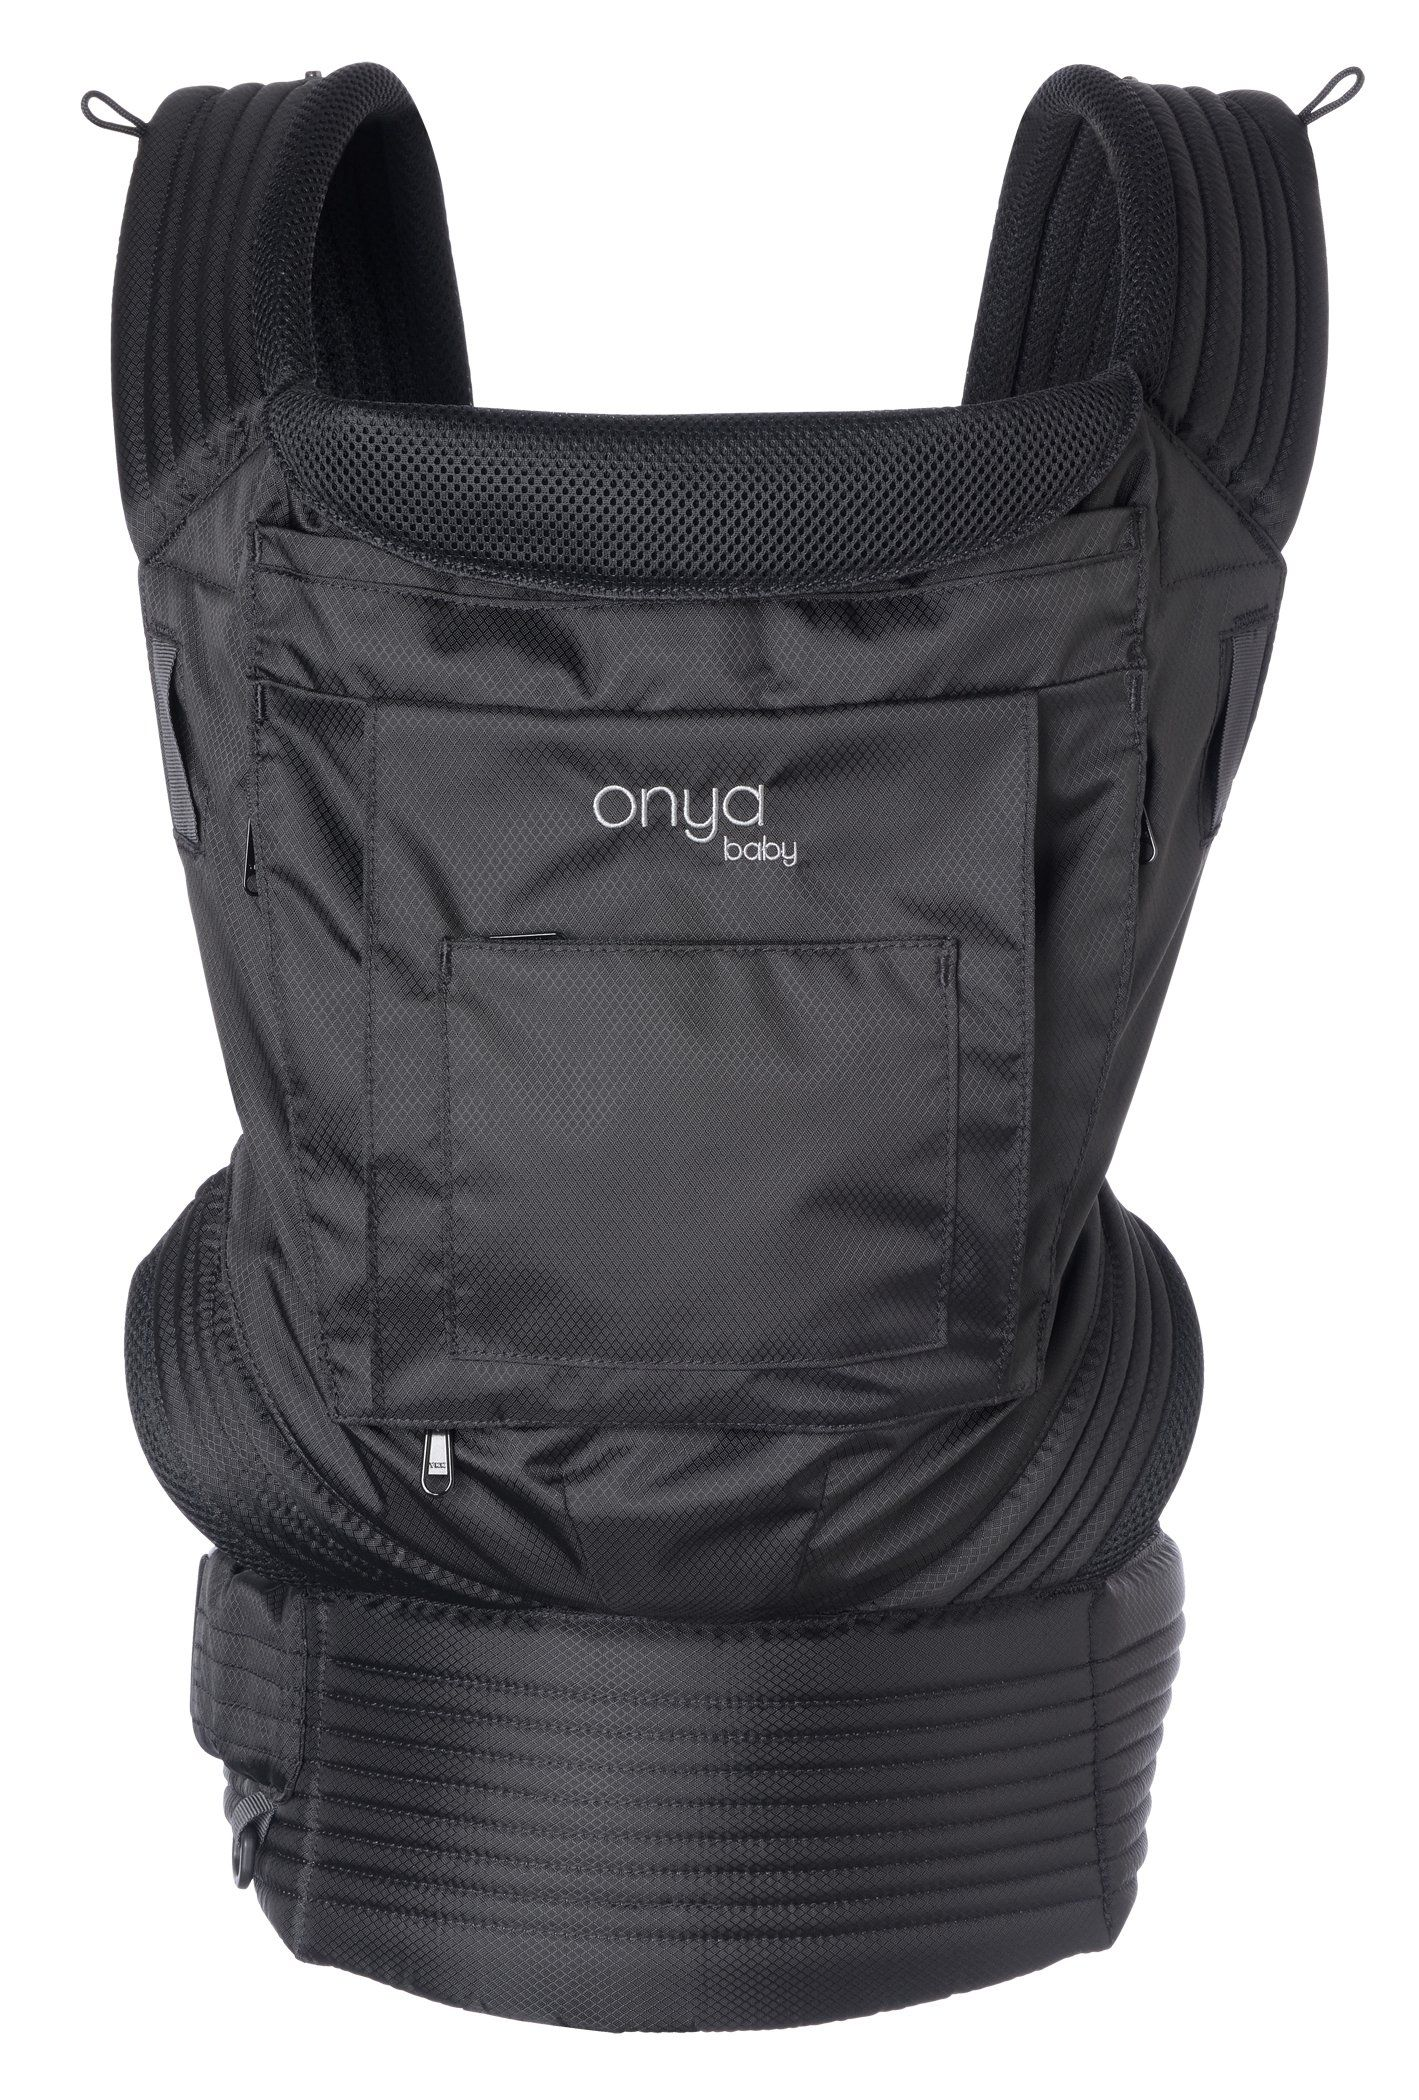 ya Baby Outback Baby Carrier Jet Black Ergonomic soft structured baby carrier with 3